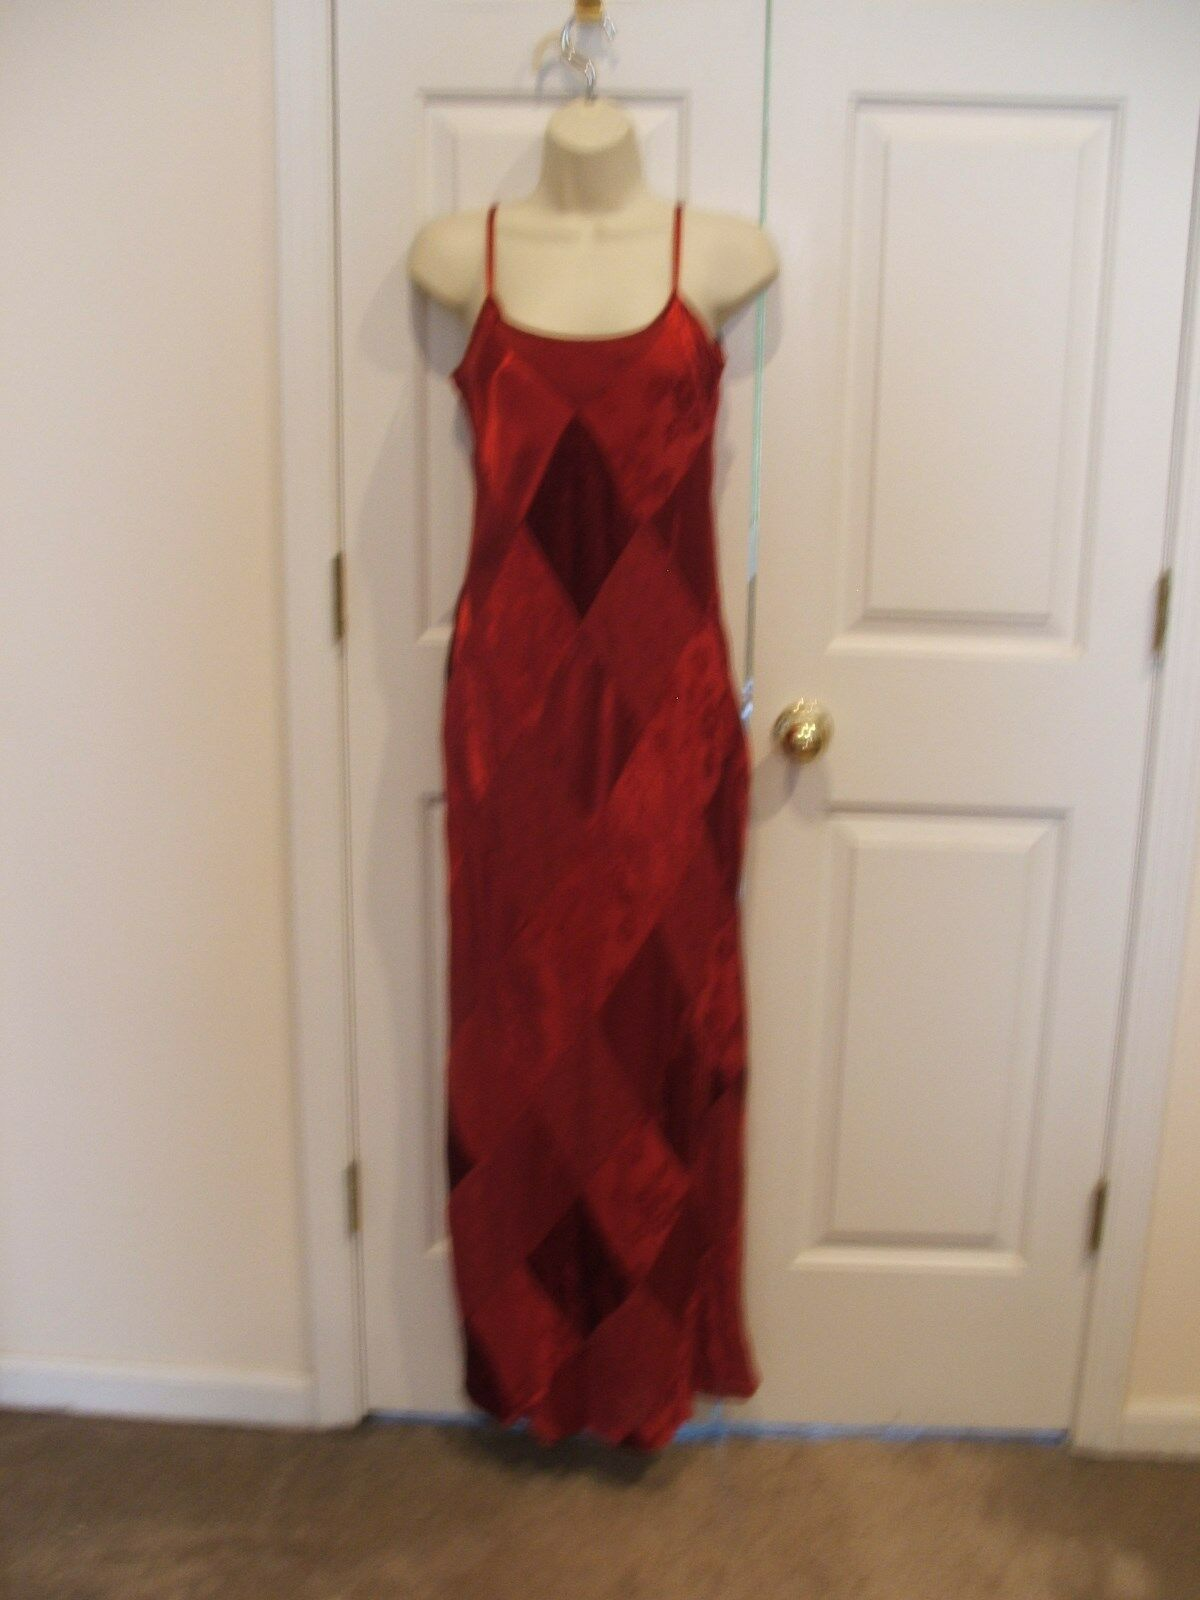 NEW NEWPORT NEWS BURGUNDY  FULLY LINED  PARTY FORMAL OCASSION GOWN SIZE 6 - $58.66